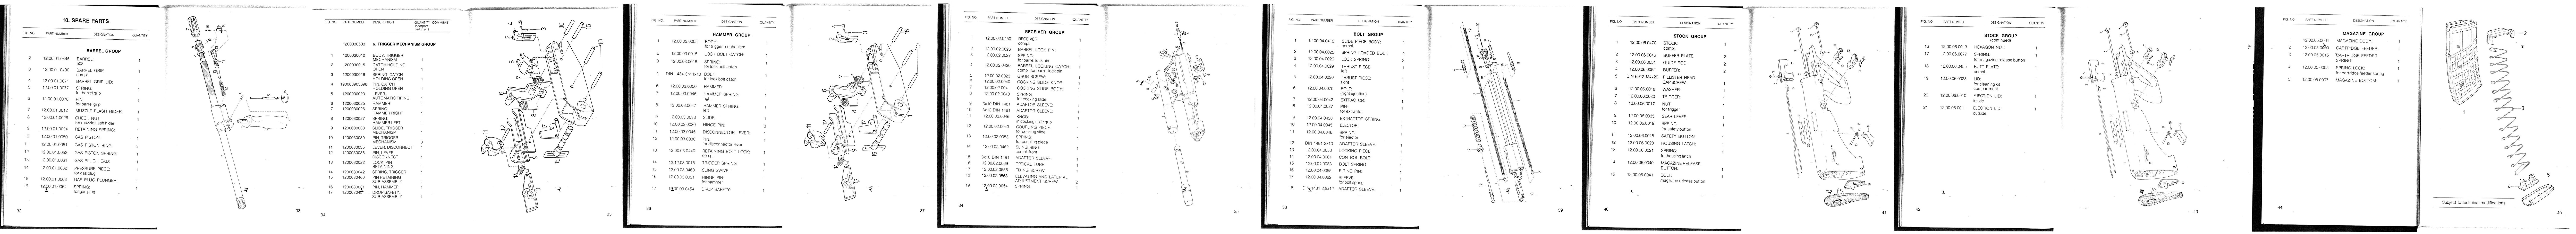 Maintenance Manual Schematic Cutaway Showing Slide Cycle And Case Ejection 10 20 Aug32 45 1359035 Bytes